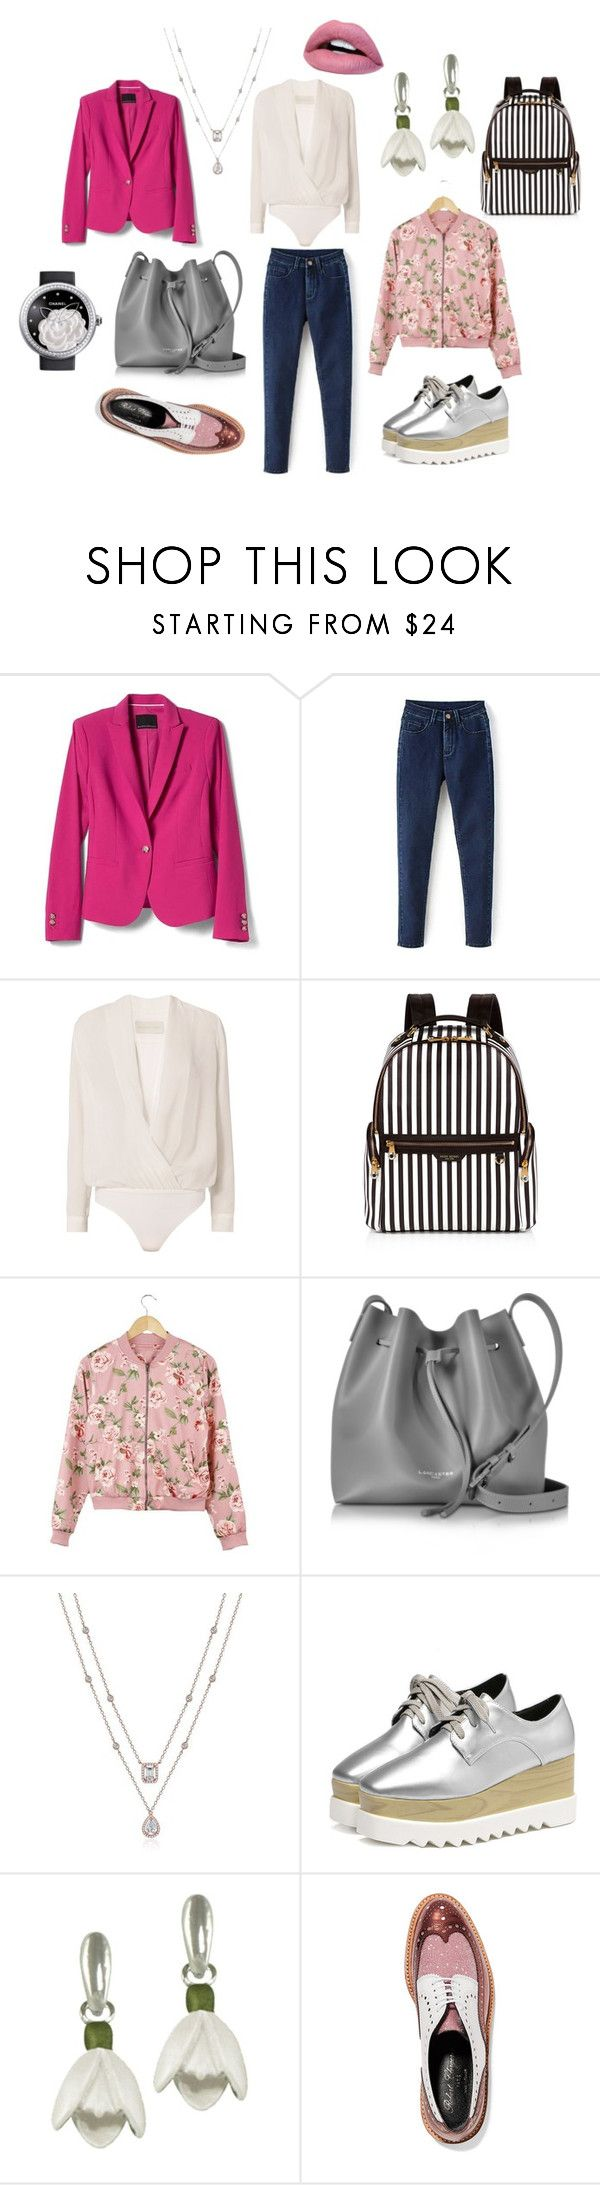 """Пацанка"" by evavendoc on Polyvore featuring мода, Banana Republic, Michelle Mason, Henri Bendel, Lancaster, Robert Clergerie и Chanel"